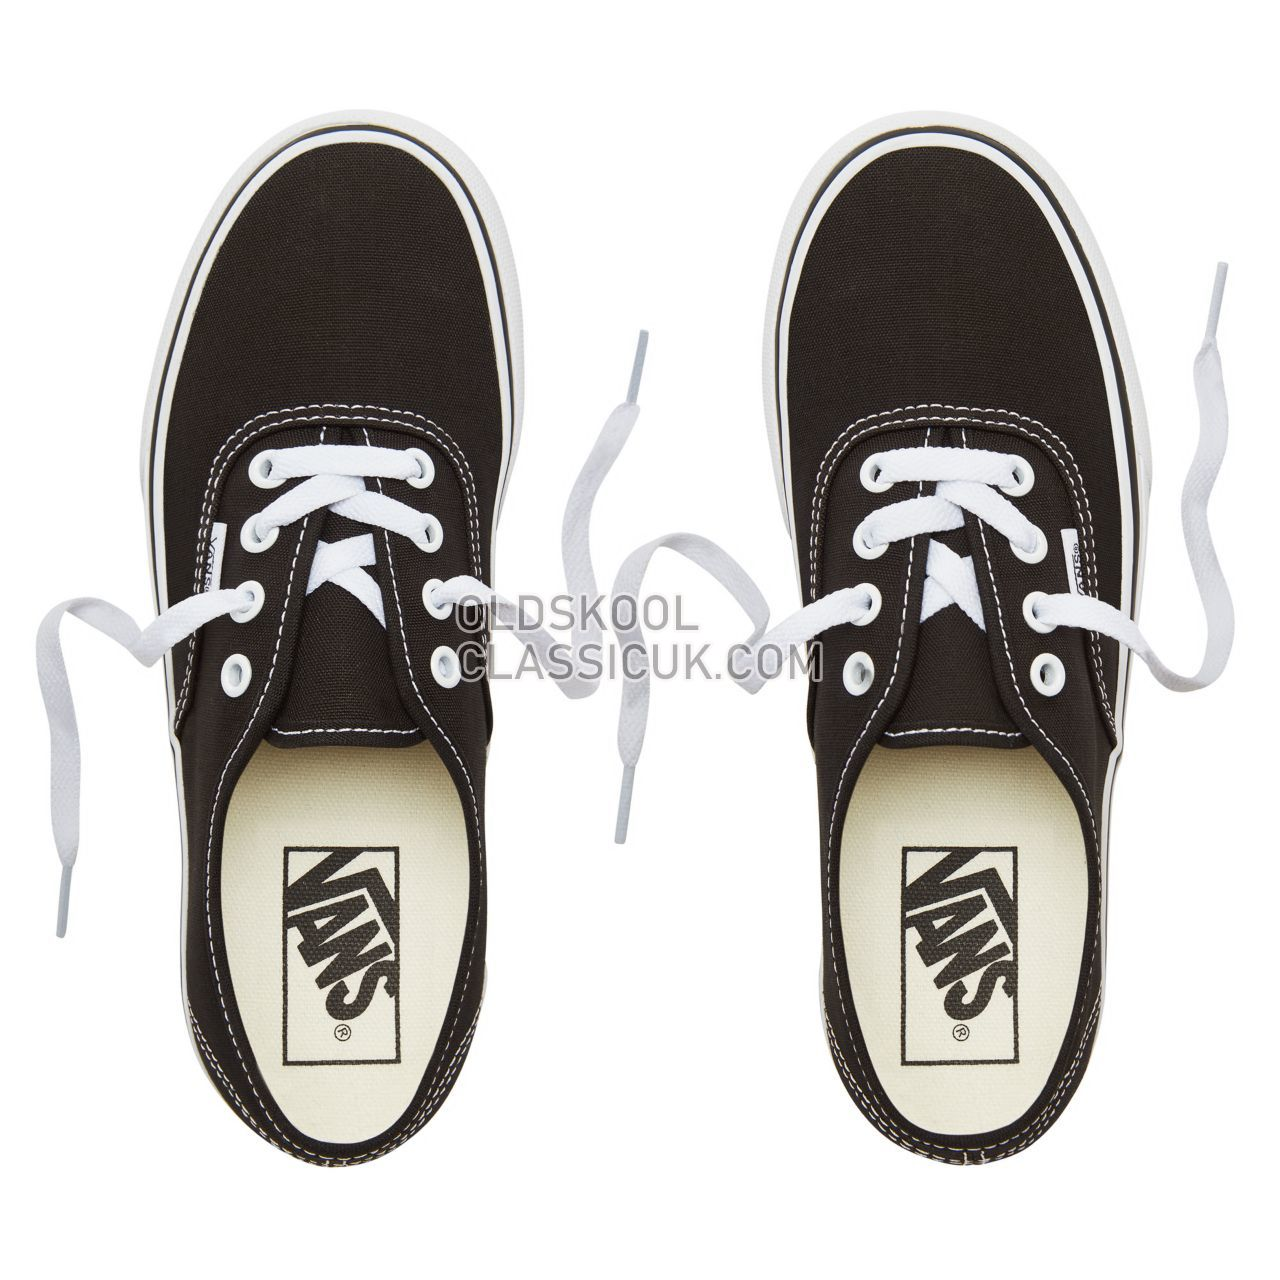 Vans Authentic Platform 2.0 Sneakers Womens Black VN0A3AV8BLK Shoes